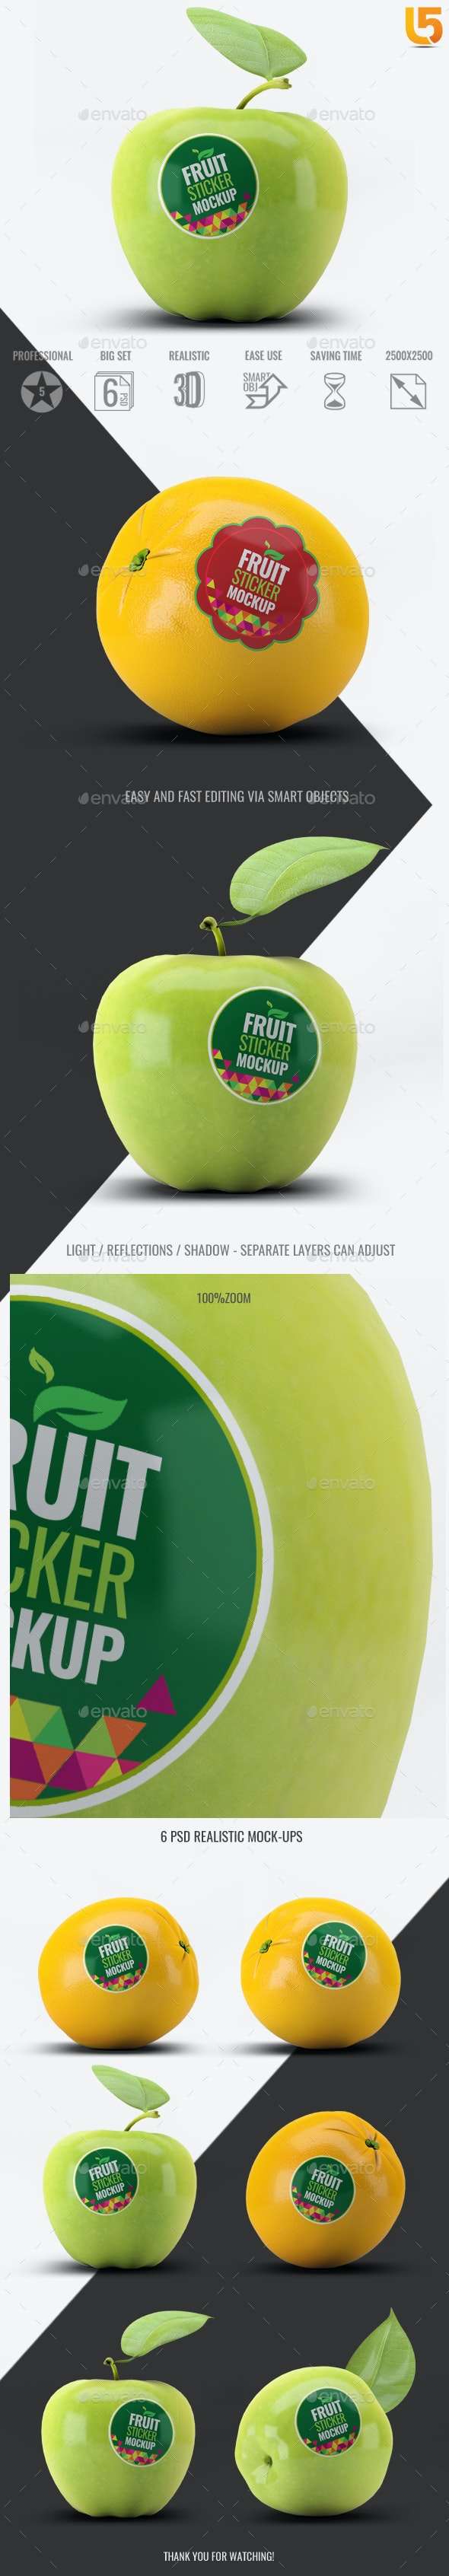 Fruit Sticker Mock-Up - Food and Drink Packaging